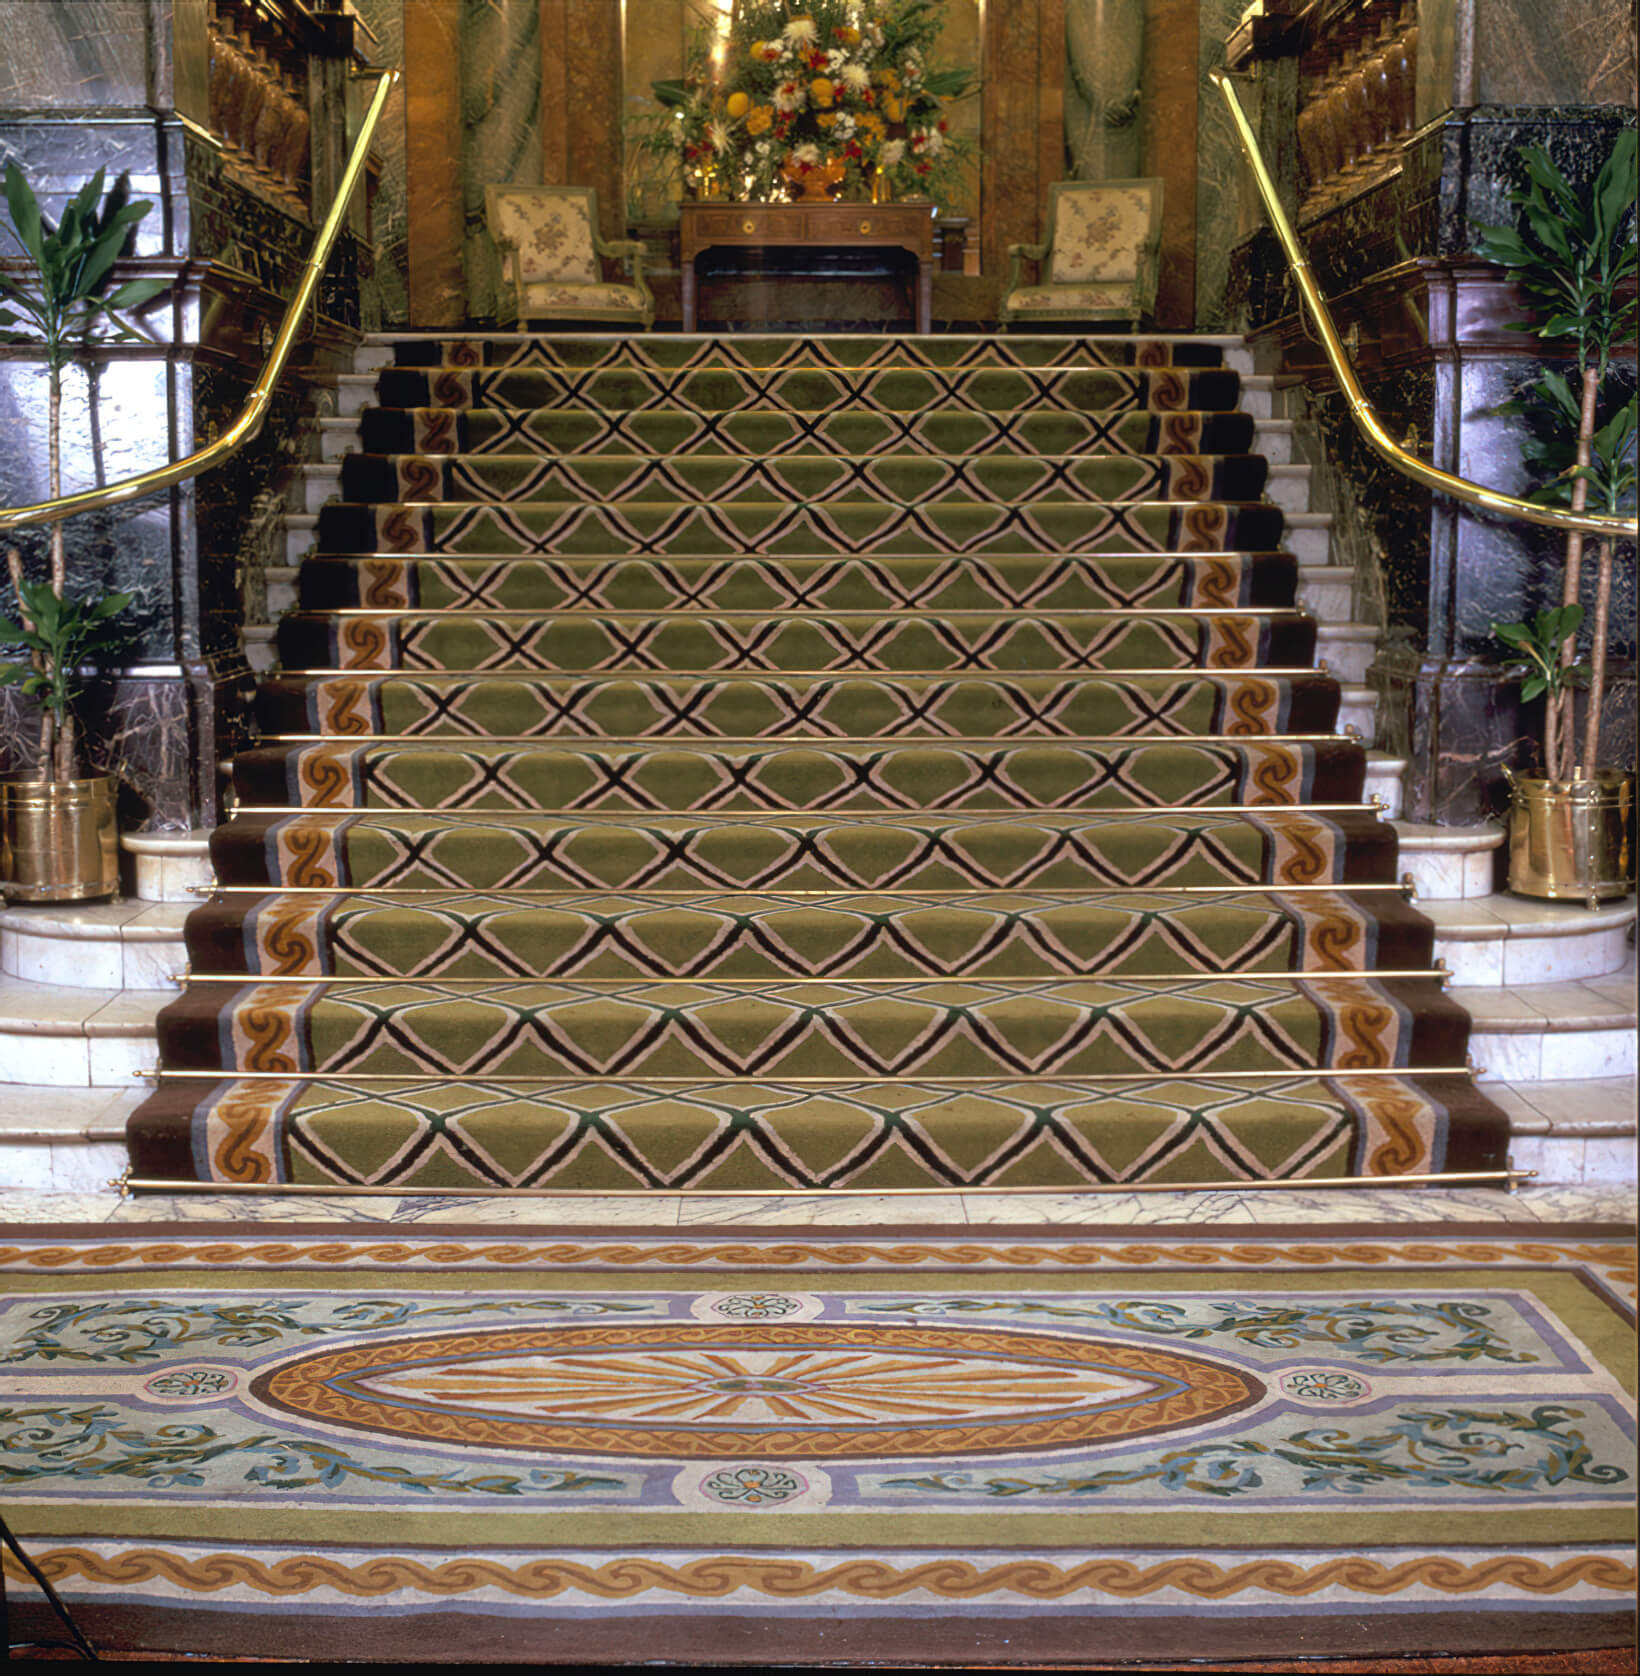 The entrance at the old Hyde Park Hotel in London.